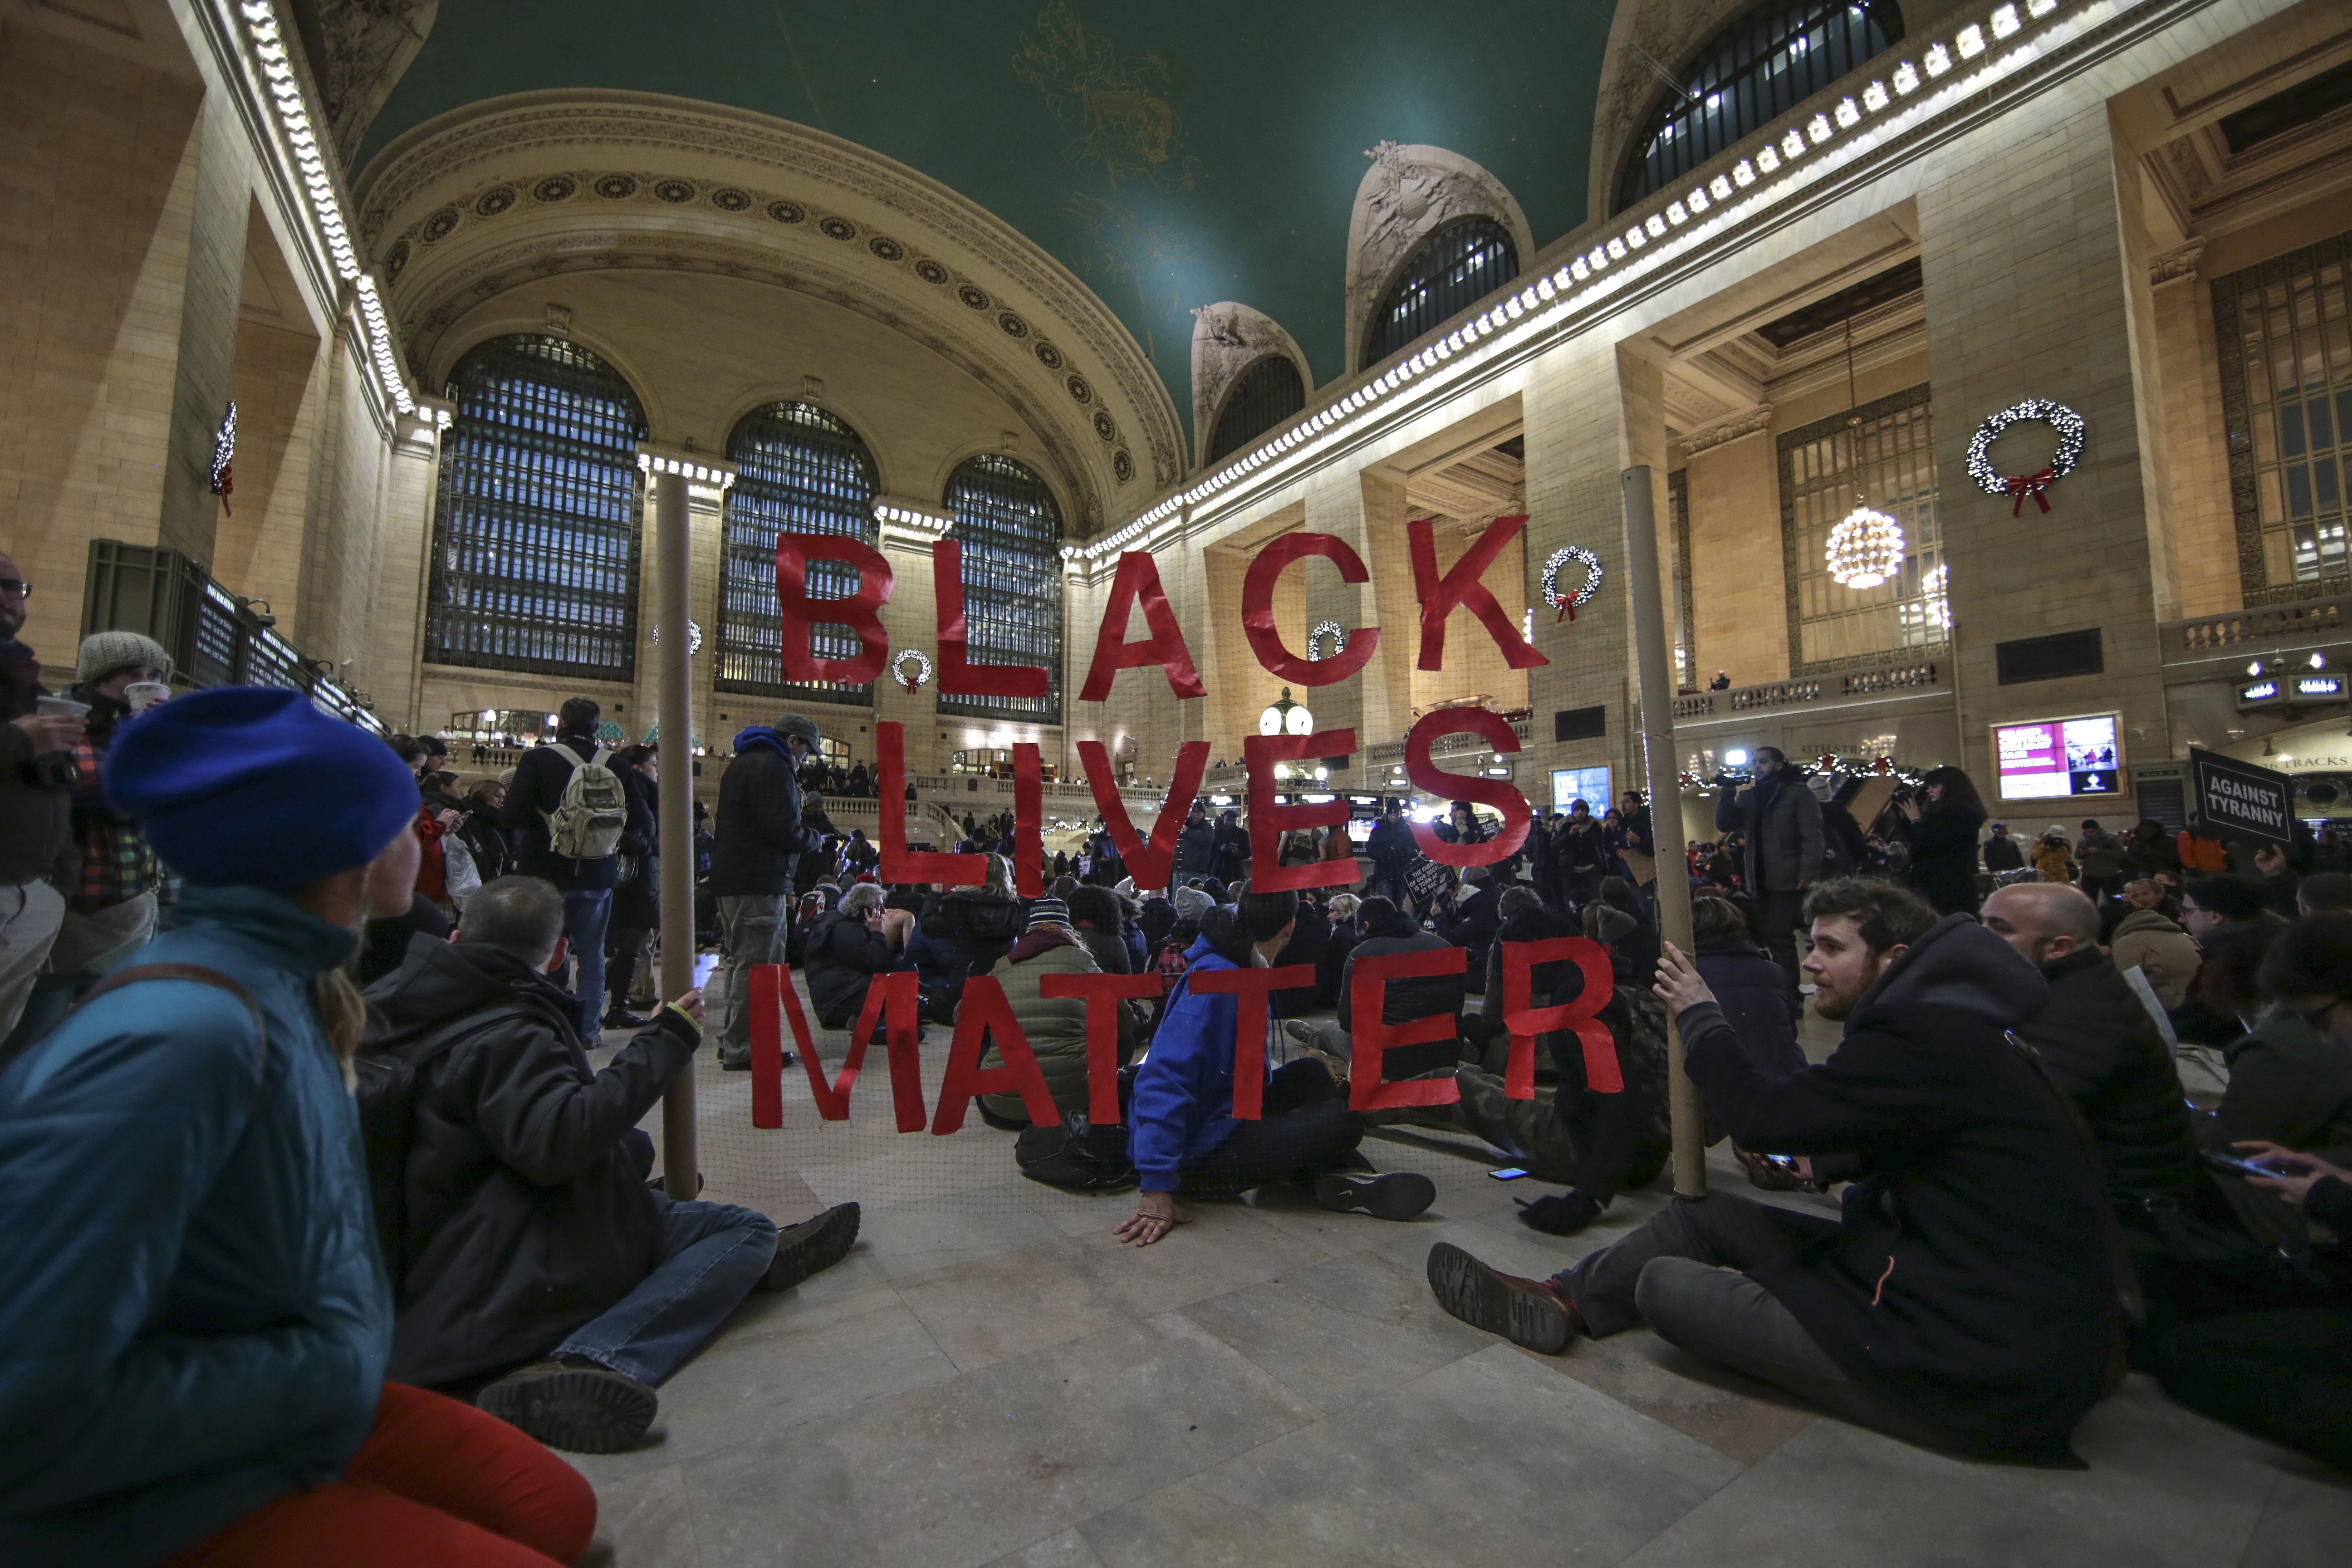 Protesters hold a banner during a protest at Grand Central Terminal after a grand jury decided not to indict a police officer involved in the death of  Eric Garner in July on December 7, 2014 in New York, N.Y. Protests are being staged nationwide after grand juries investigating the deaths of Michael Brown in Ferguson, Missouri and Eric Garner in New York failed to indict the police officers involved in both incidents.